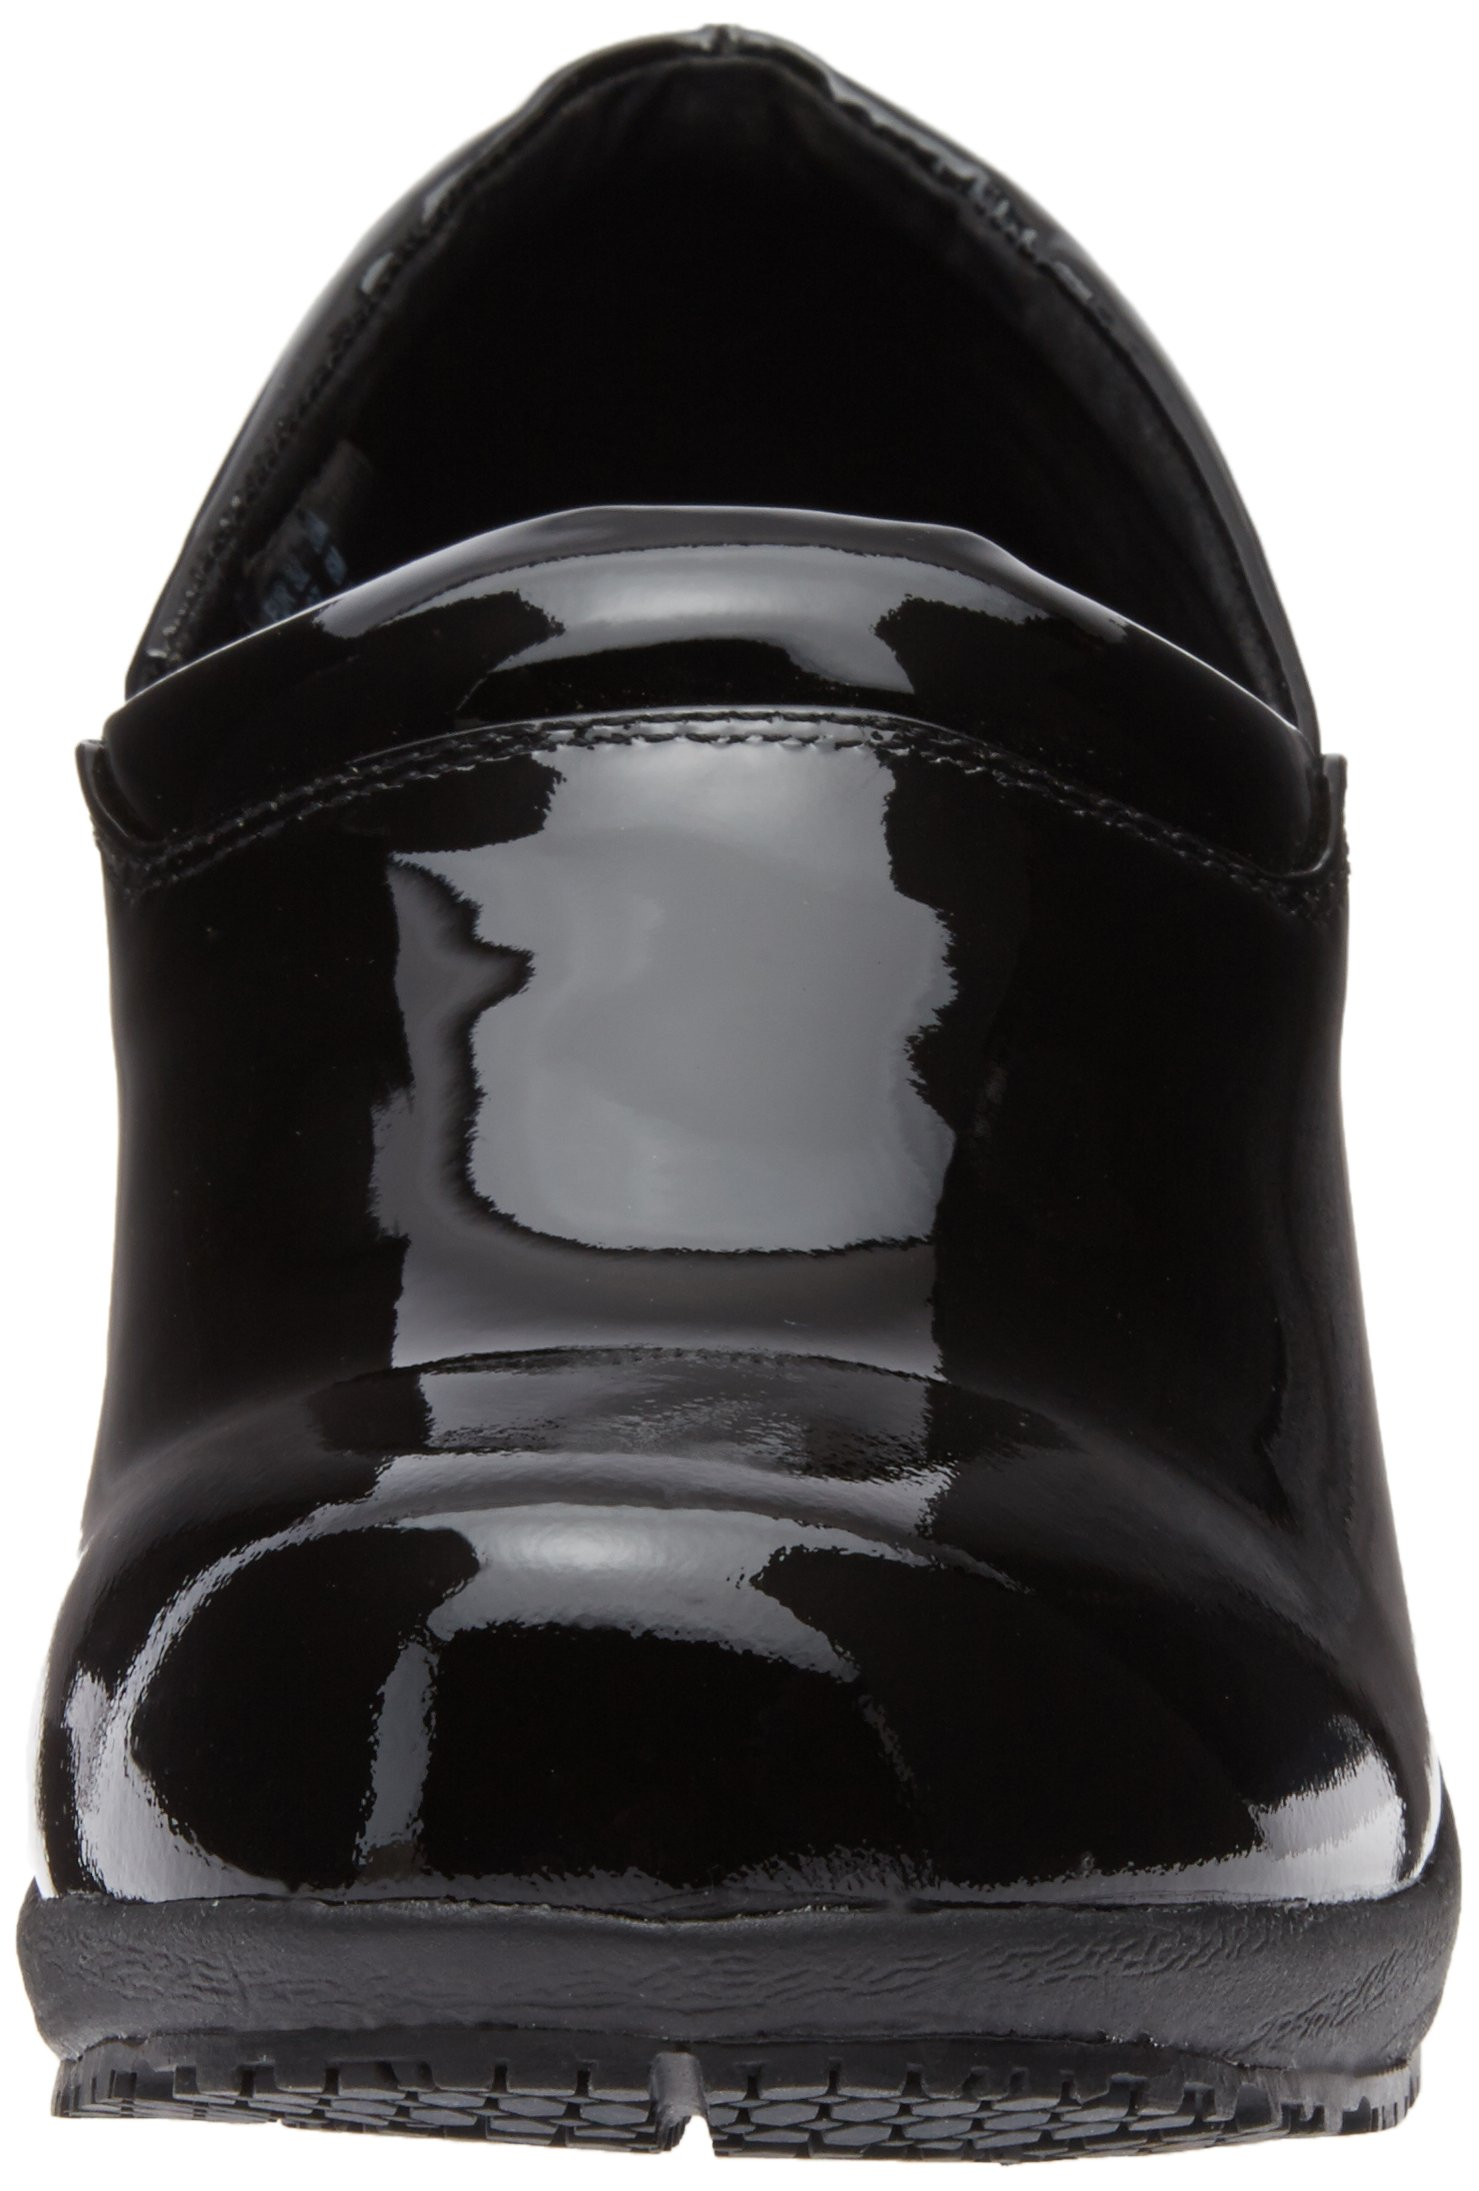 Cherokee Women's Patricia Step In Shoe, Black Patent, 6.5 M US by Cherokee (Image #4)